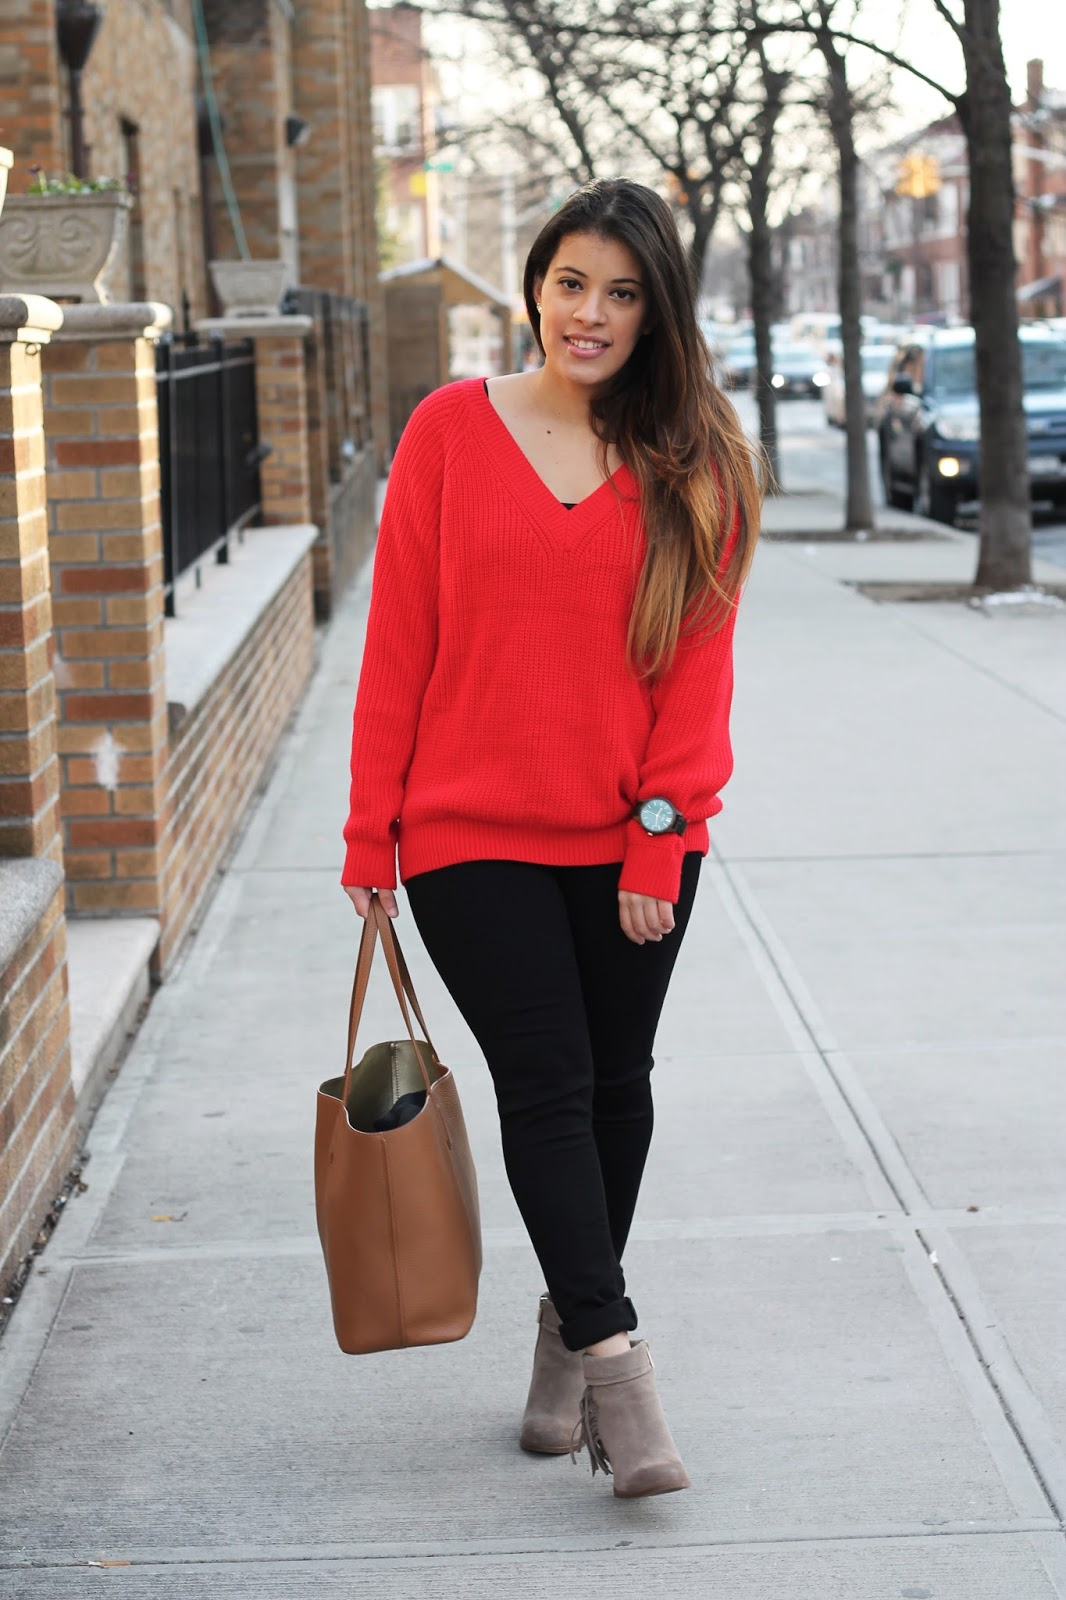 Casual Valentine's Day look; Zaful Red Knit Sweater and Black Skinnies.